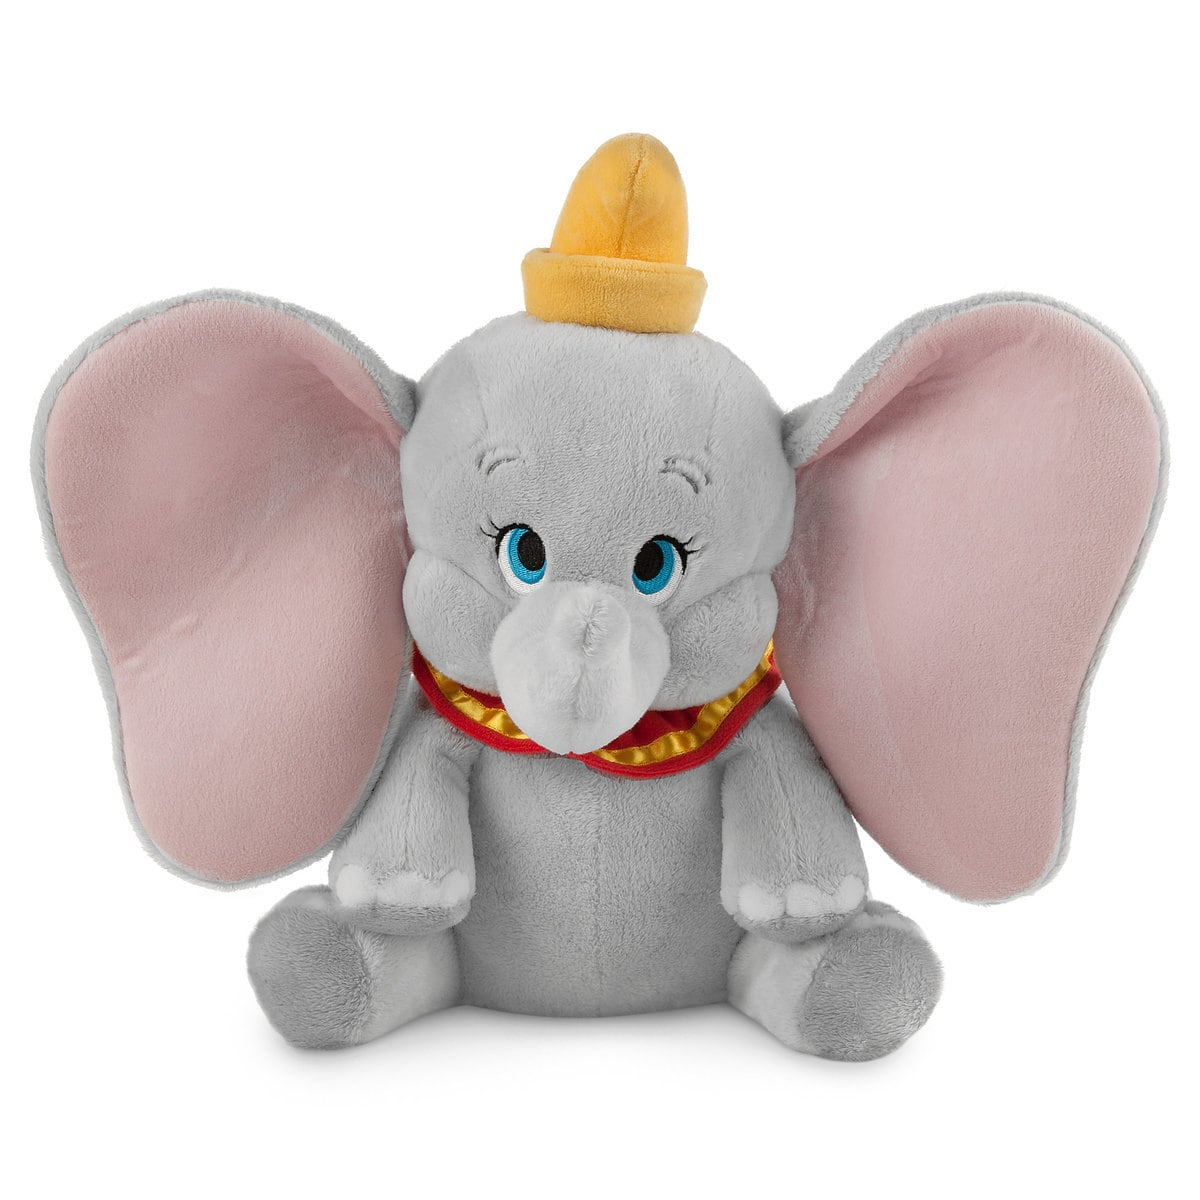 Top 25 Disney Gift Ideas for Babies featured by top US Disney blogger, Marcie and the Mouse: Dumbo plush for babies